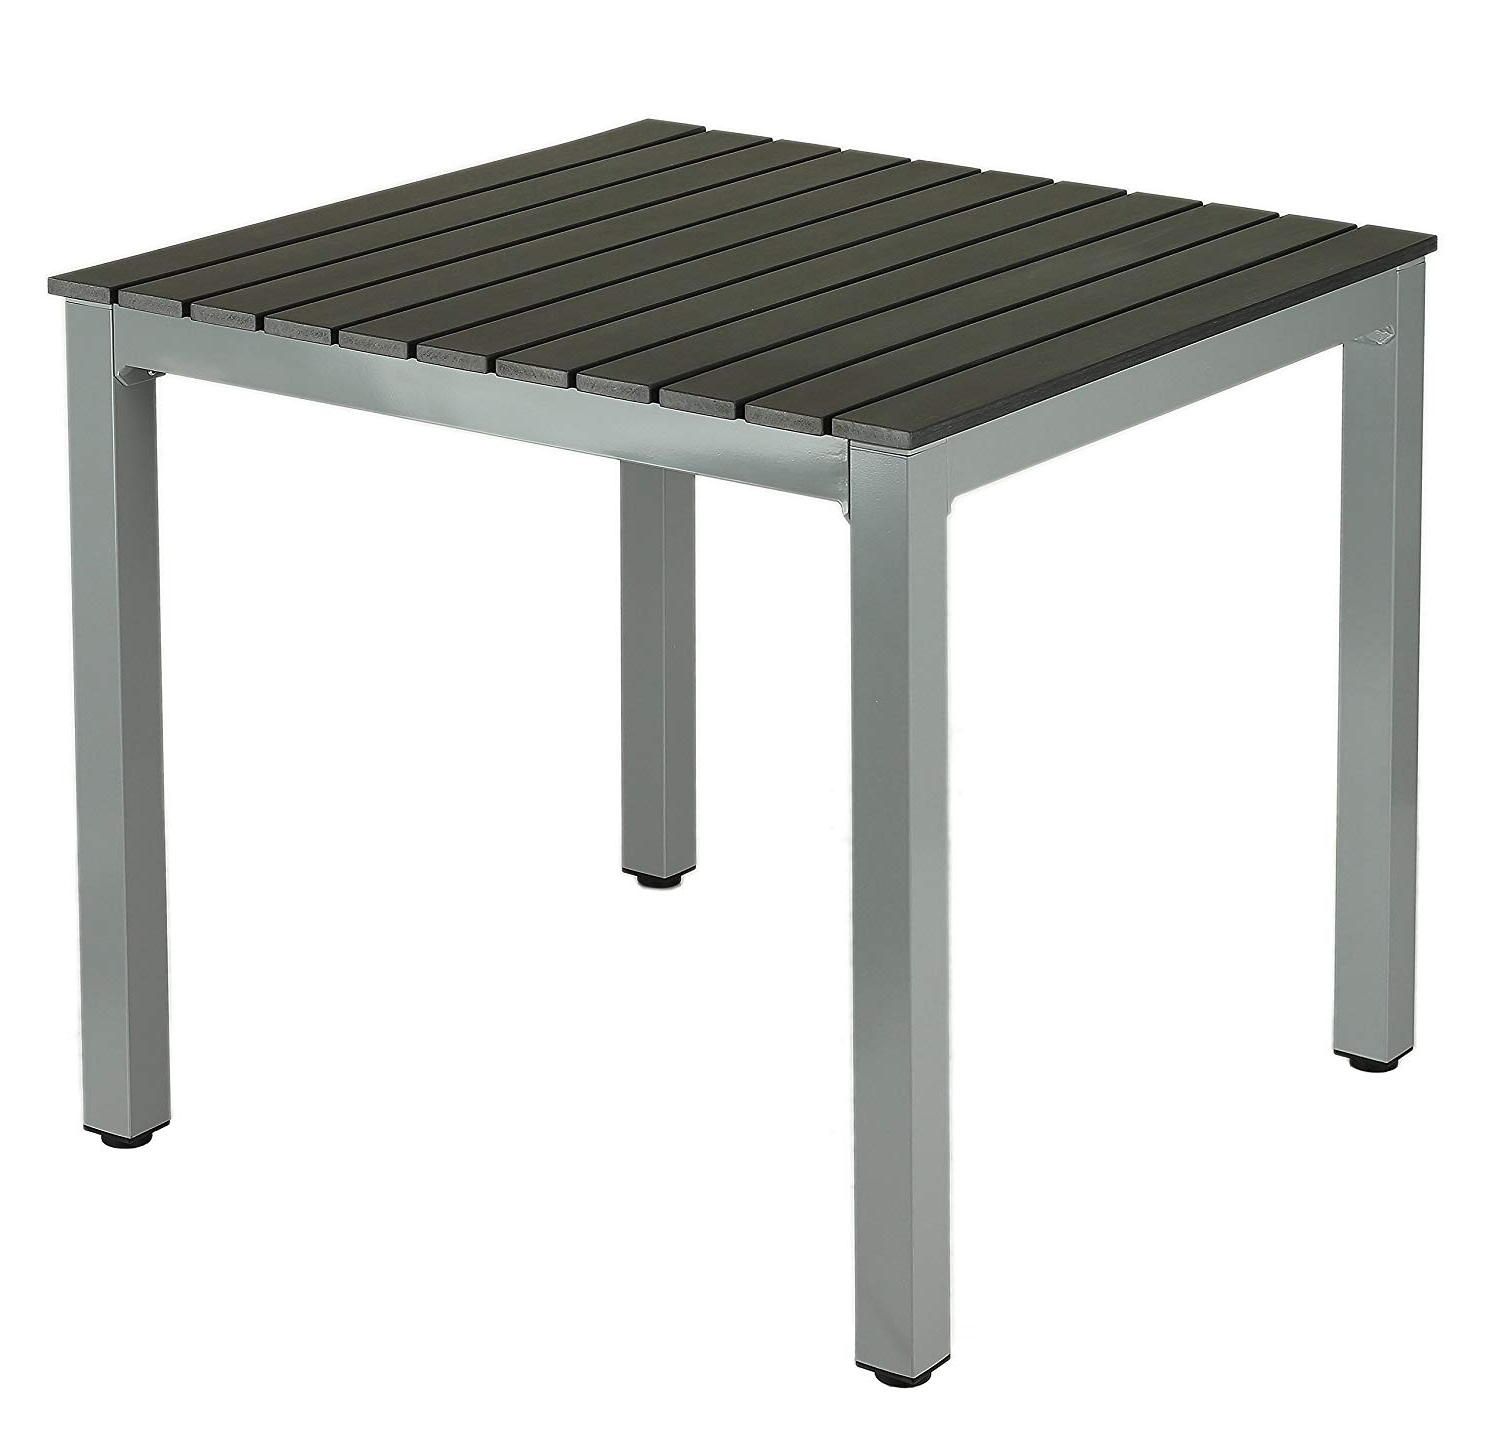 Most Popular Amazon : Jaxon Aluminum Outdoor Table In Poly Wood, Silver/slate With Jaxon 6 Piece Rectangle Dining Sets With Bench & Wood Chairs (View 15 of 25)